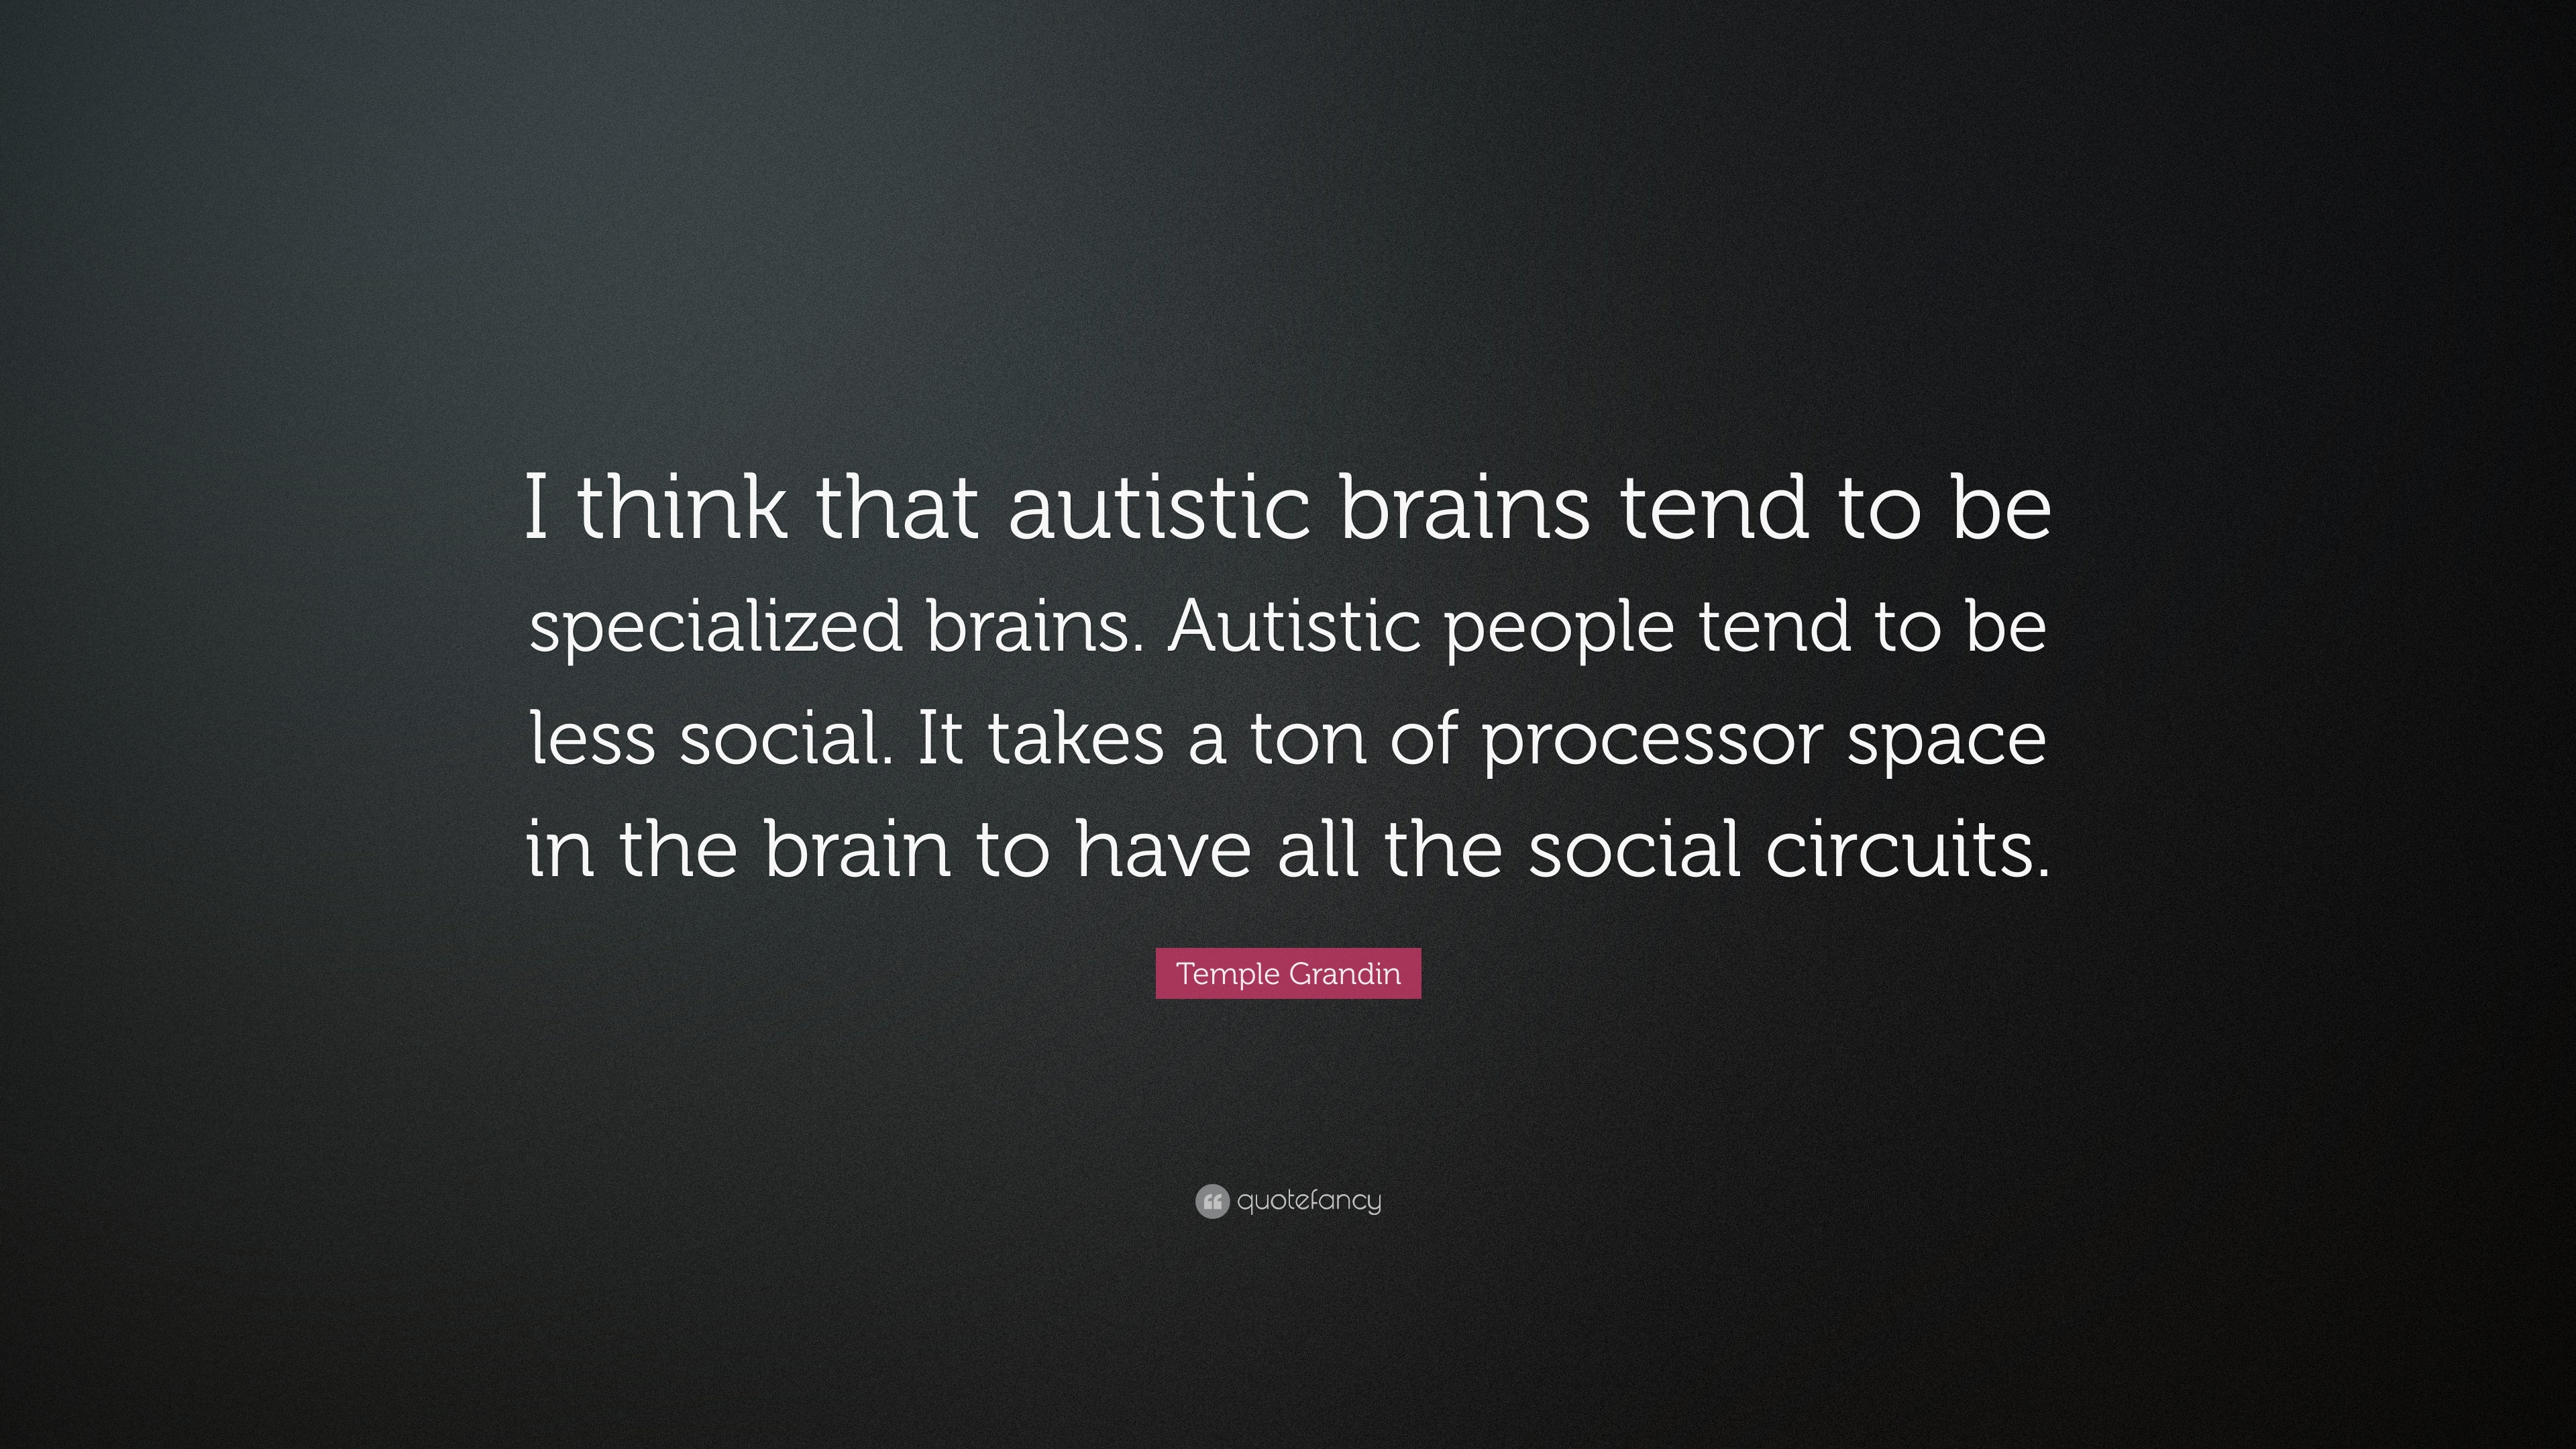 Temple Grandin Quotes | Temple Grandin Quote I Think That Autistic Brains Tend To Be